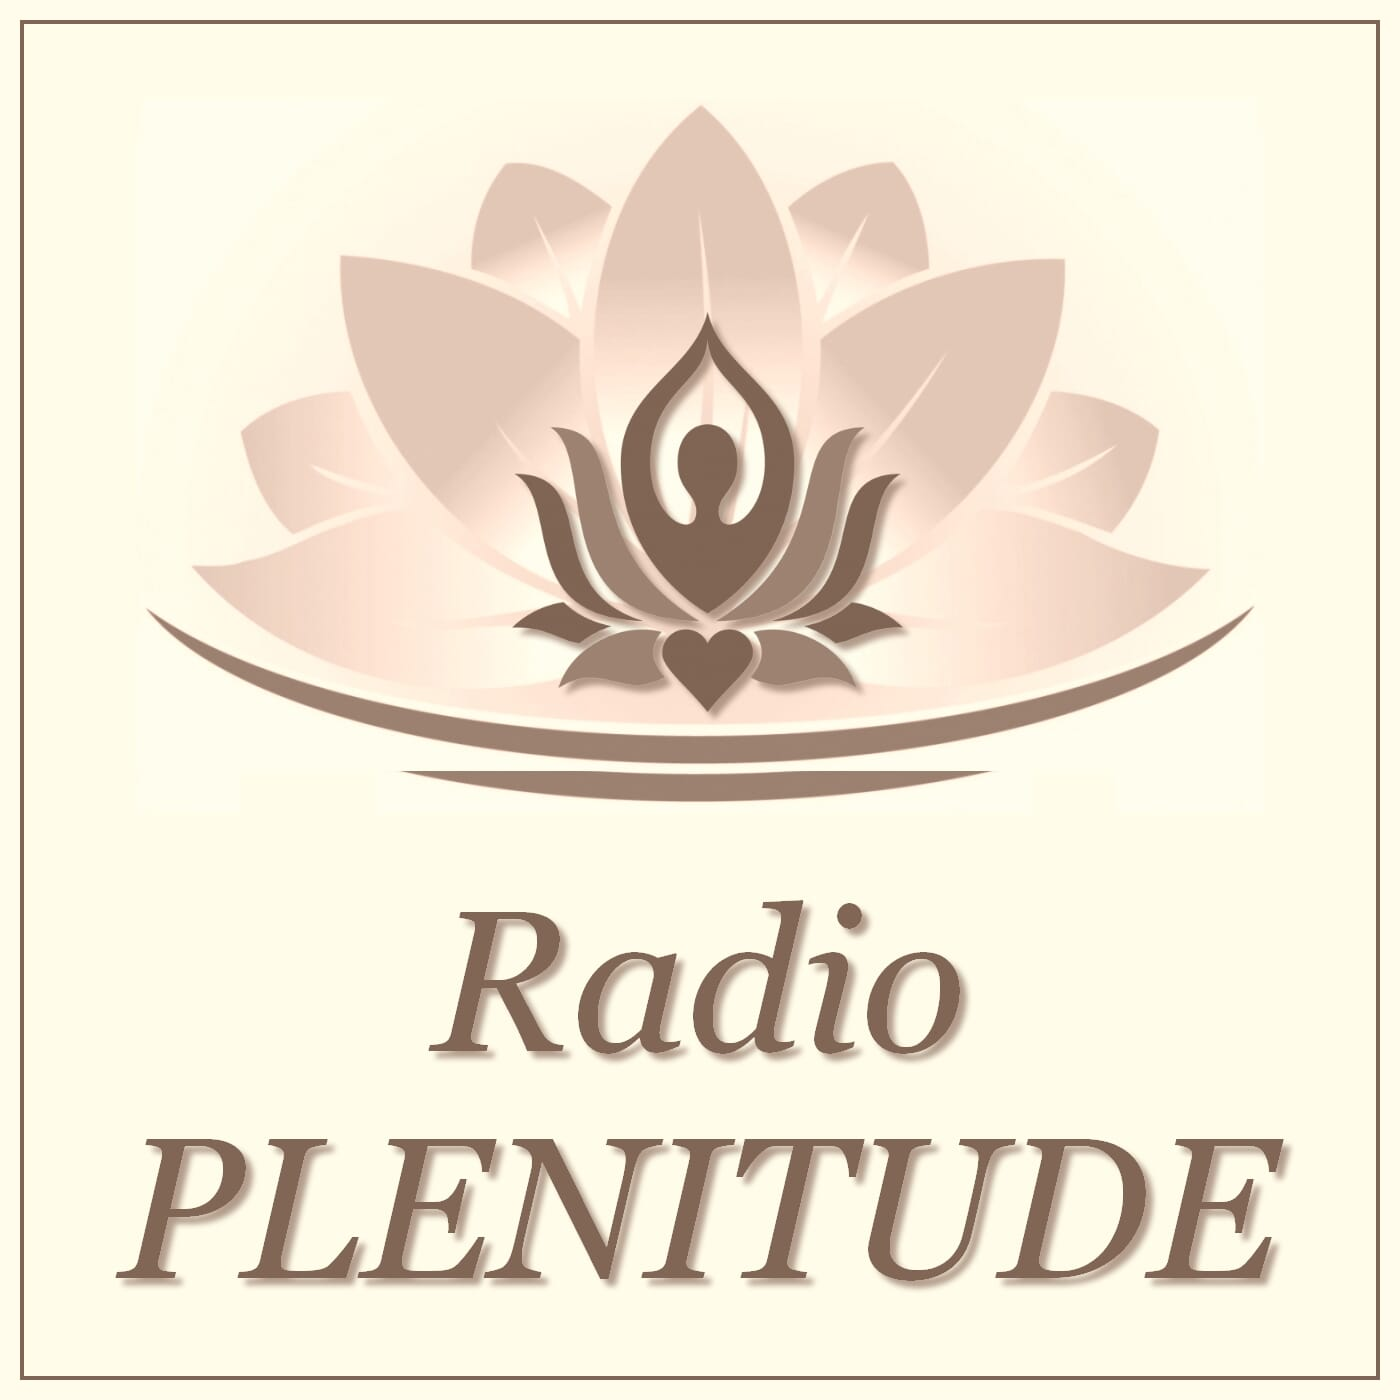 Listen to Radio Plenitude